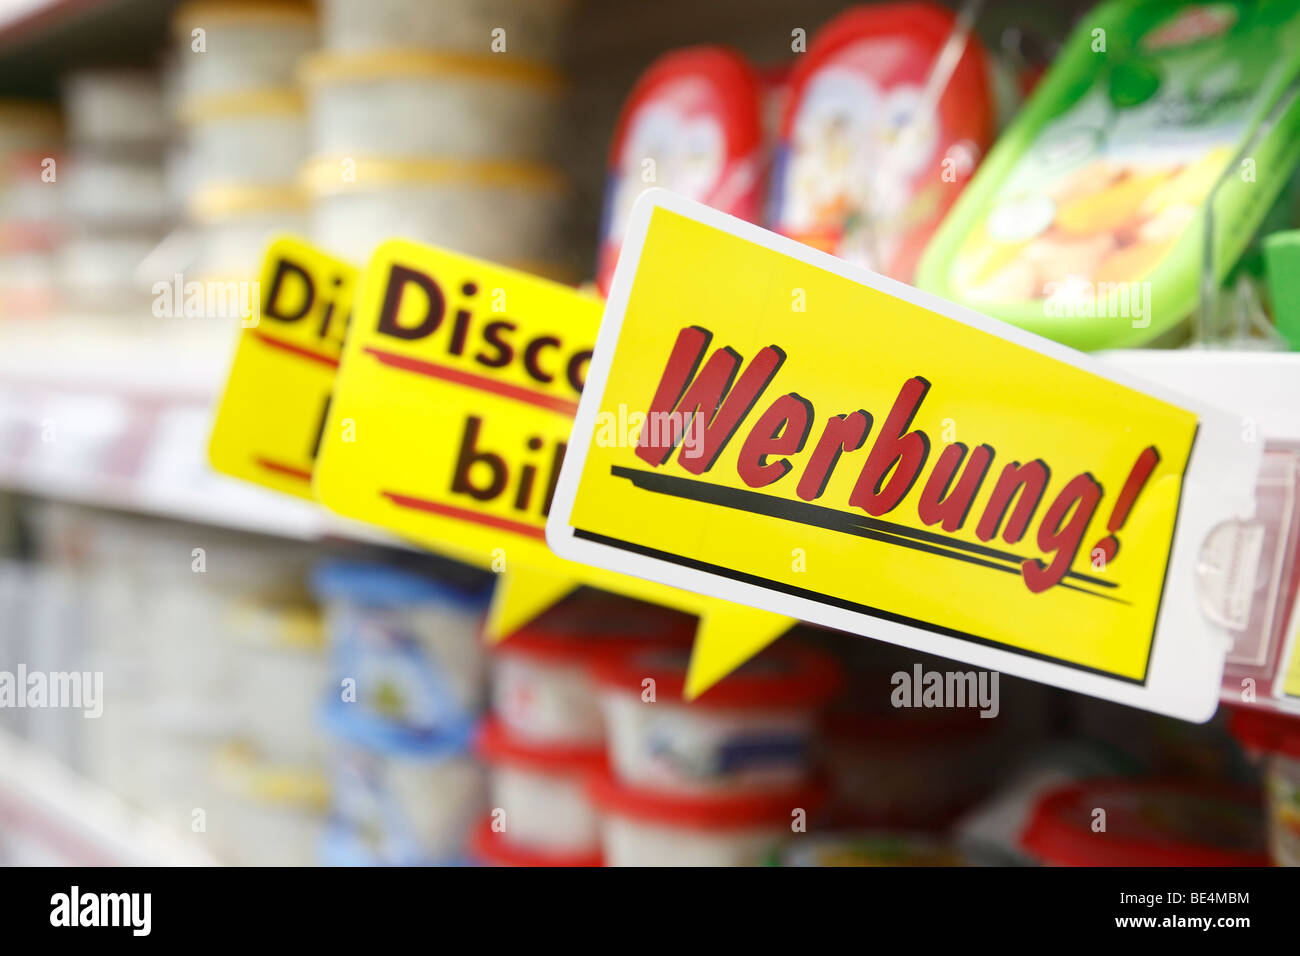 advertising sign in a German supermarket - Stock Image